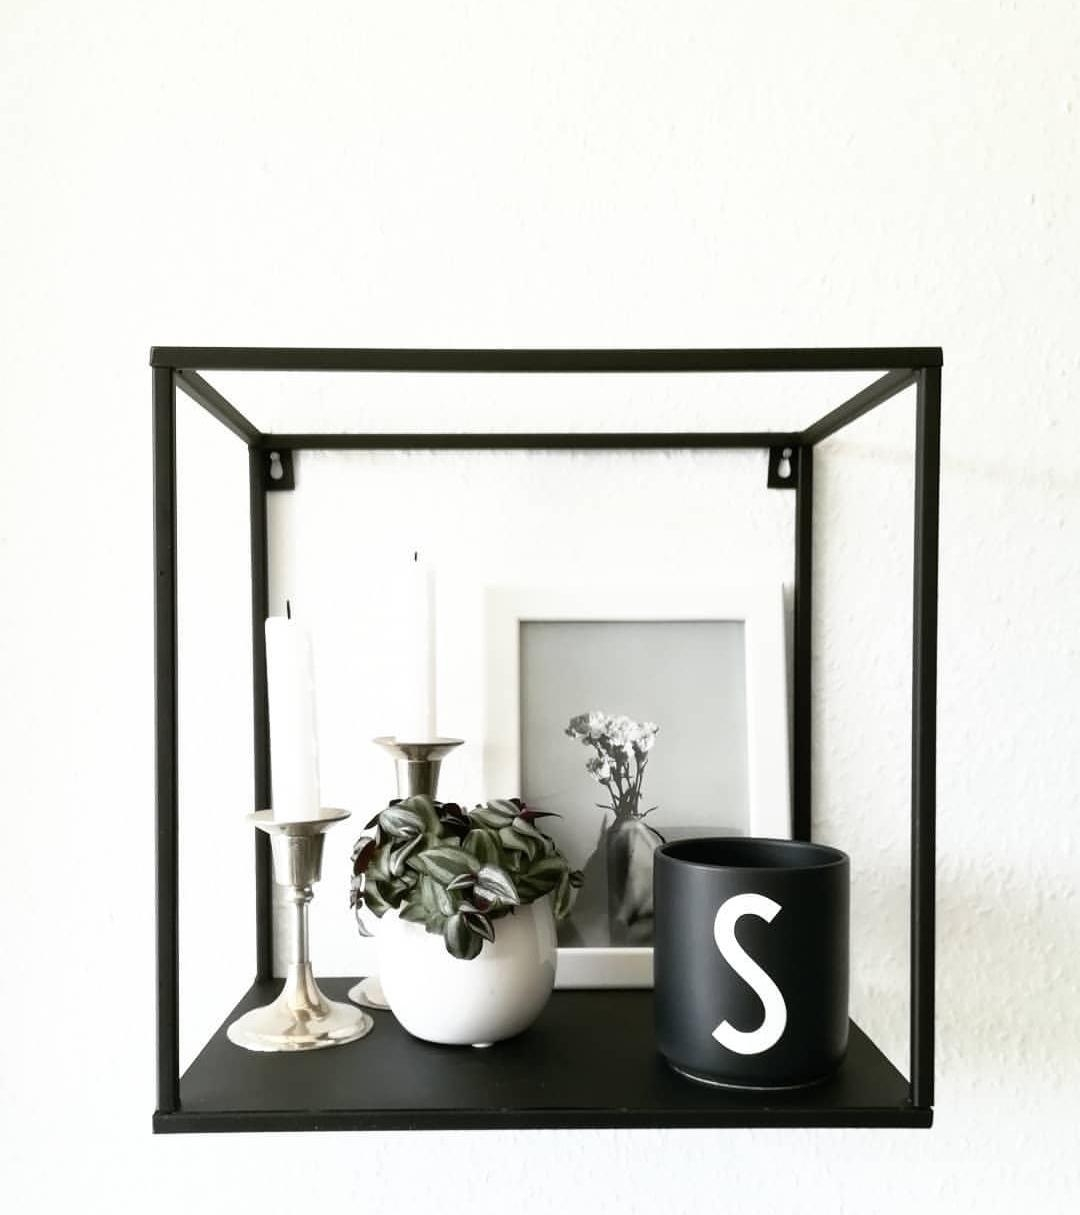 Shelf shelfie blackinterior whiteliving blackandwhite minimalism wgzimmer  a0216f26 f4e0 4c5a 843e 37159e1073d2